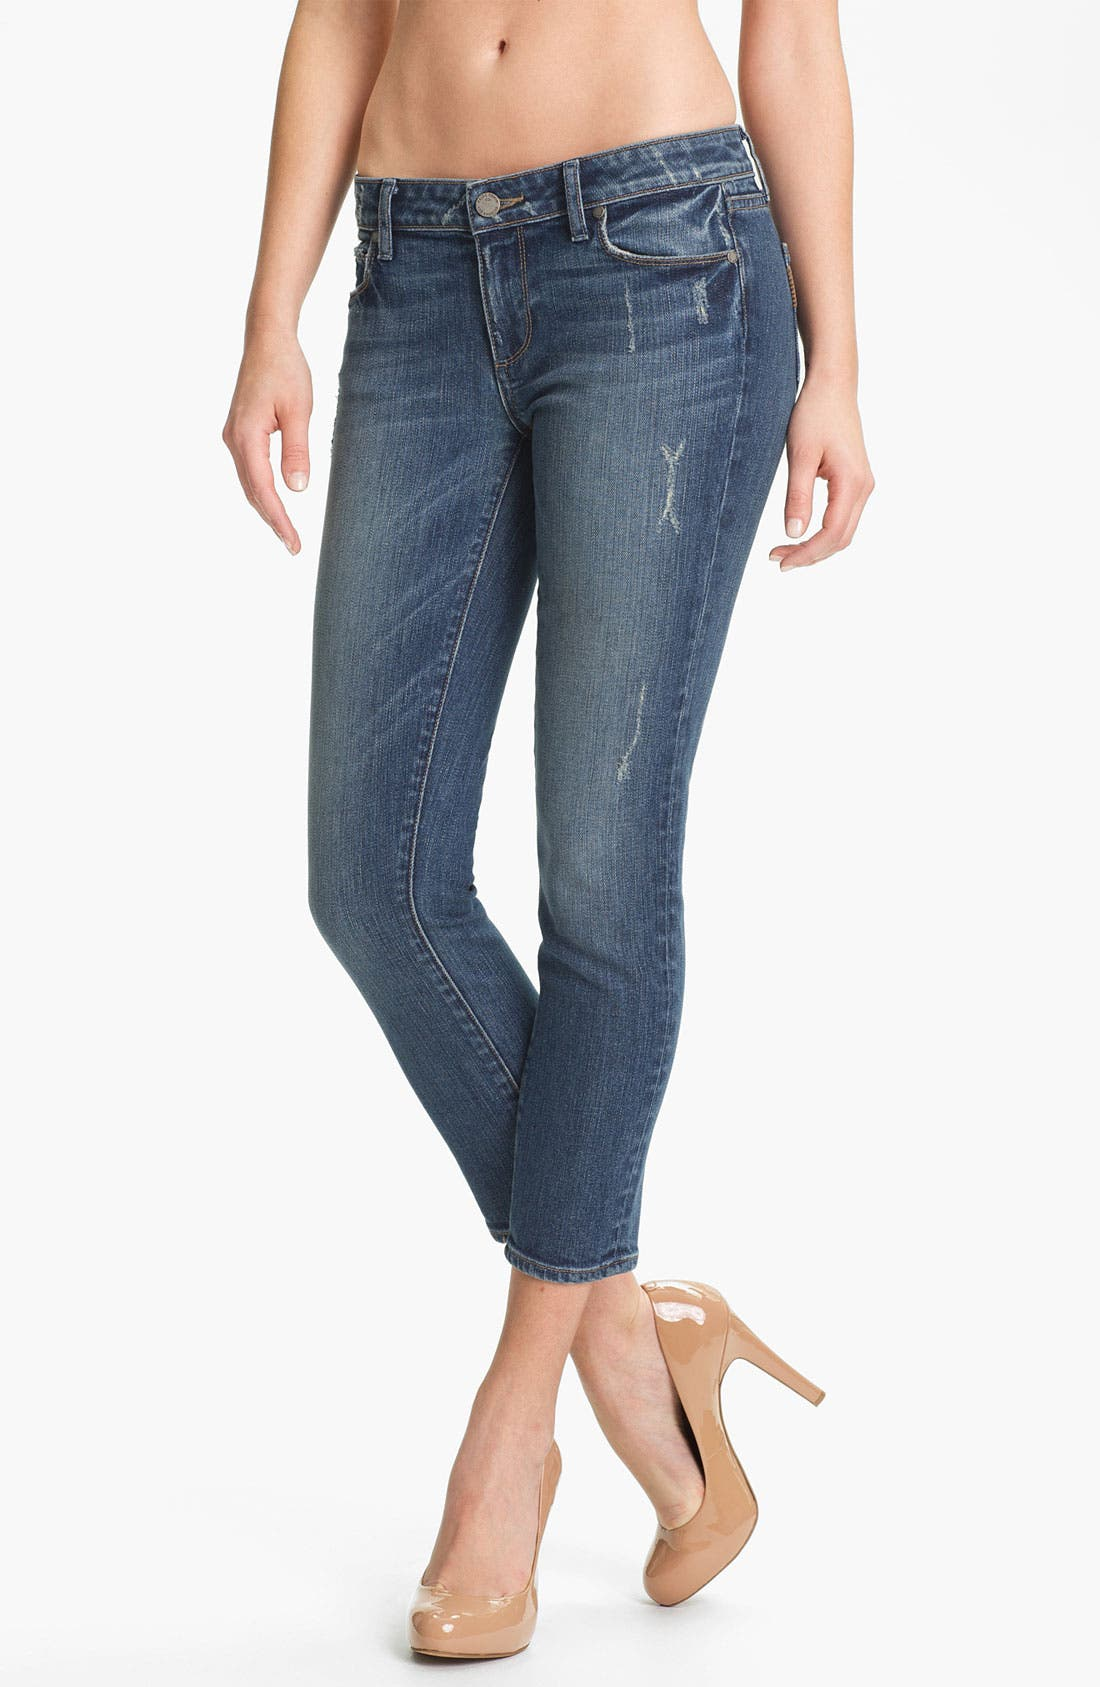 Alternate Image 1 Selected - Paige Denim 'Kylie' Crop Skinny Jeans (Beachwood)